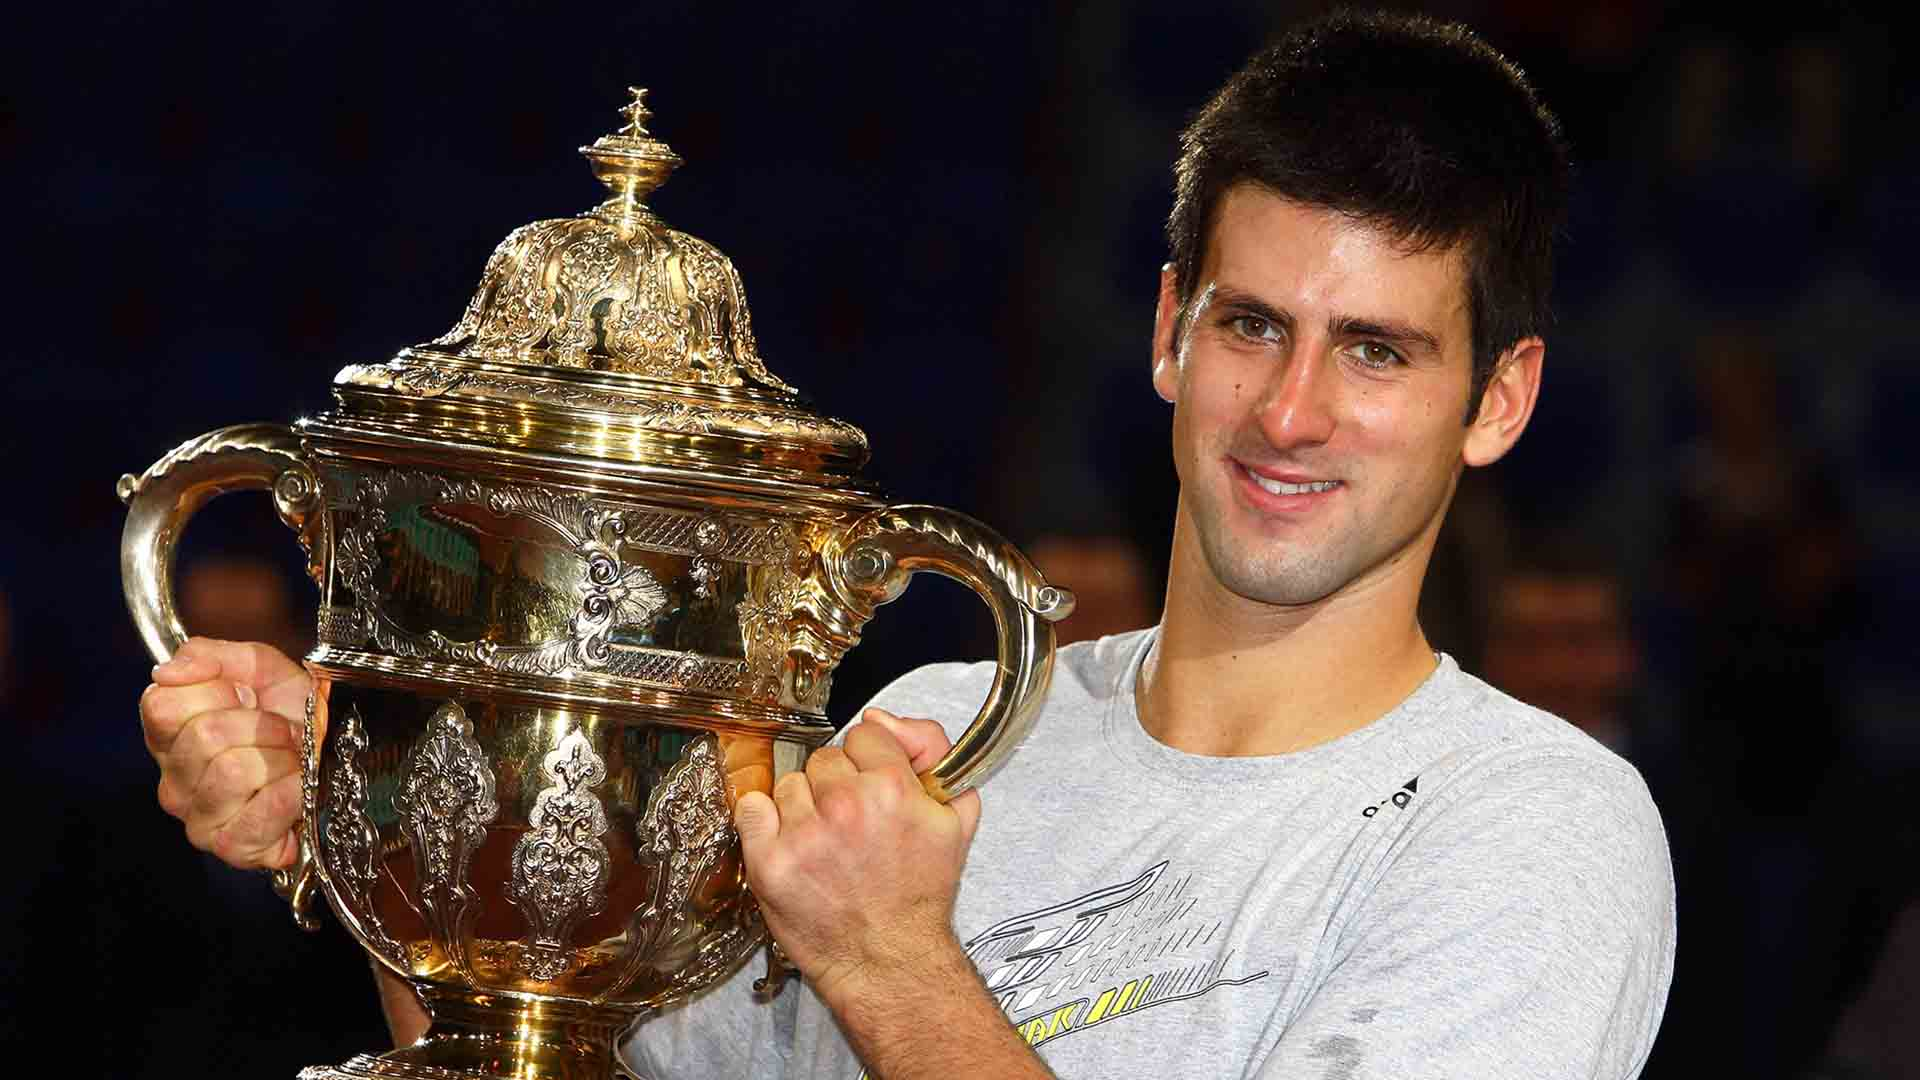 Novak Djokovic defeated three-time defending champion Roger Federer in three sets in the 2009 Swiss Indoors Basel final.